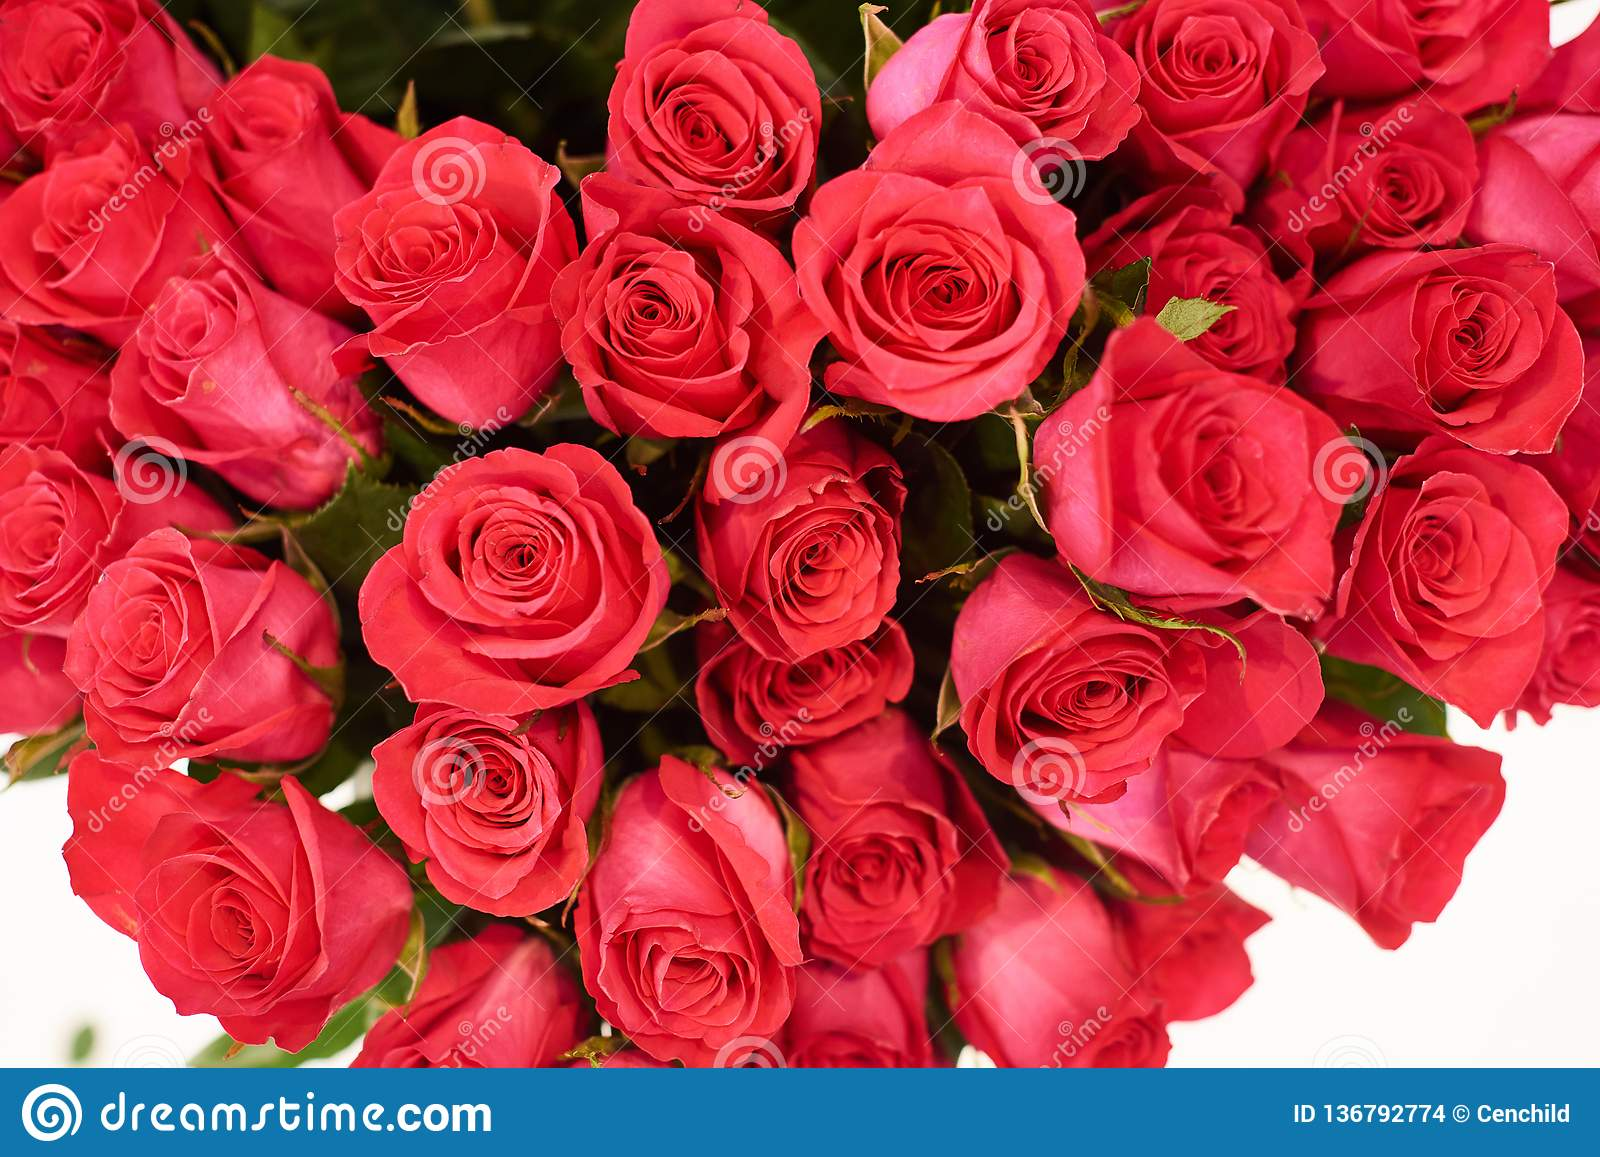 Fresh Cut Red Roses And Arrangements In Florist Shop